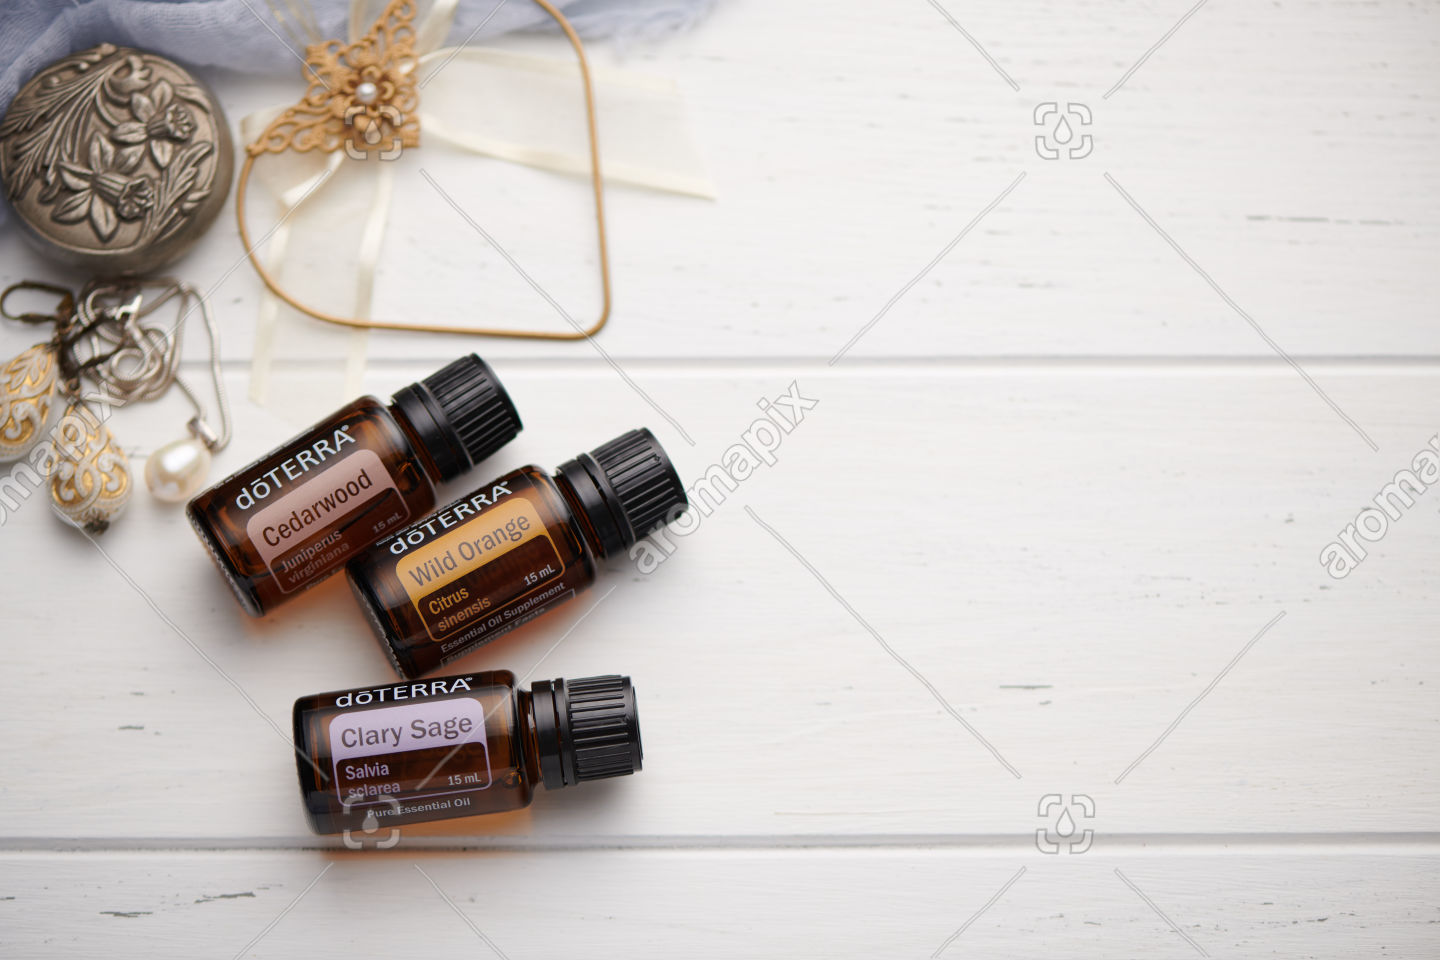 doTERRA Cedarwood, Wild Orange and Clary Sage on white vintage wooden background